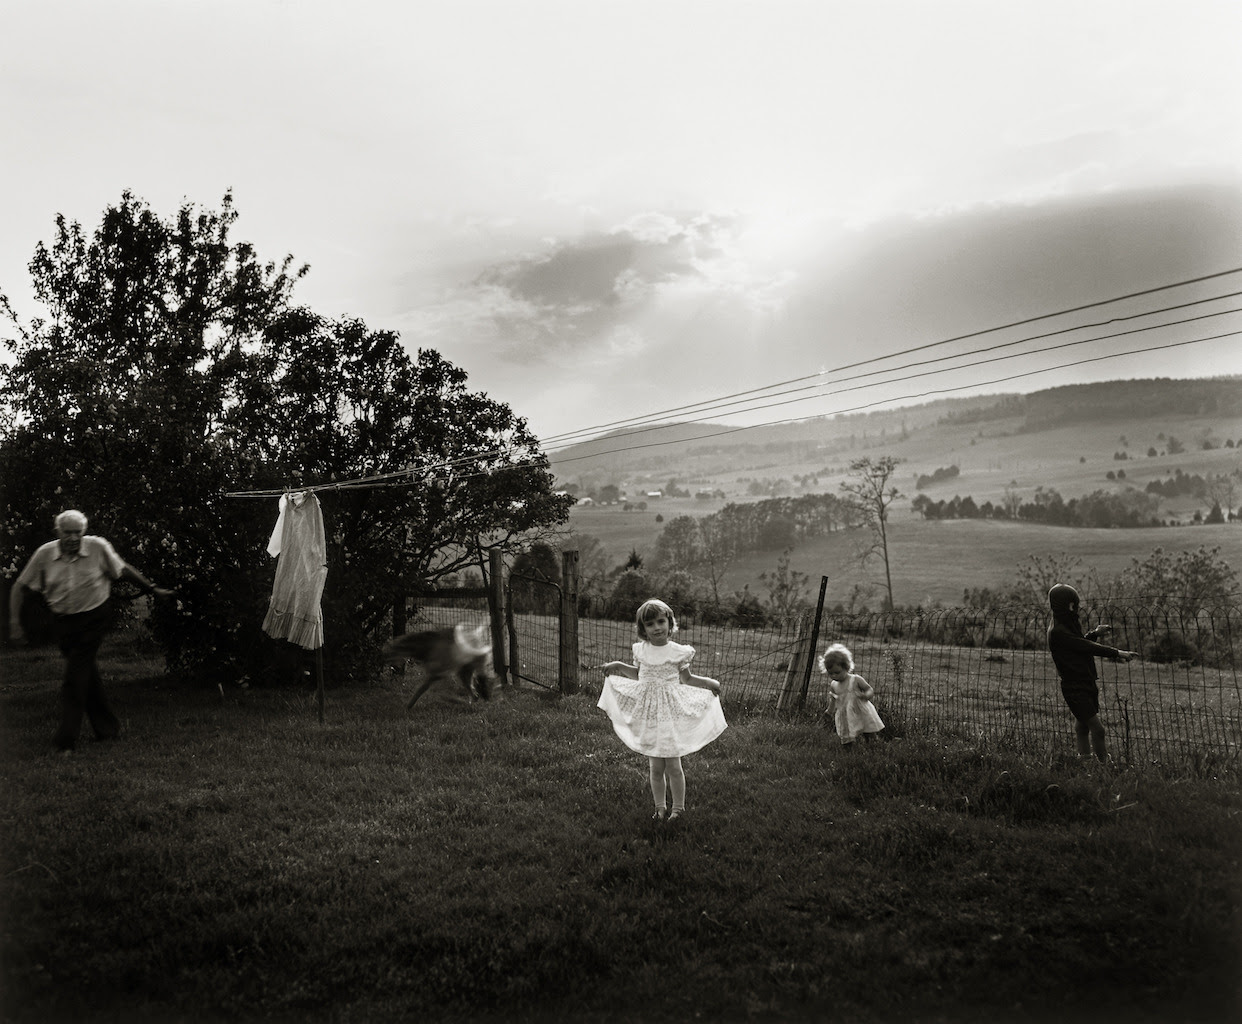 Sally Mann (American, born 1951), Easter Dress, 1986, gelatin silver print, Patricia and David Schulte. Image © Sally Mann.